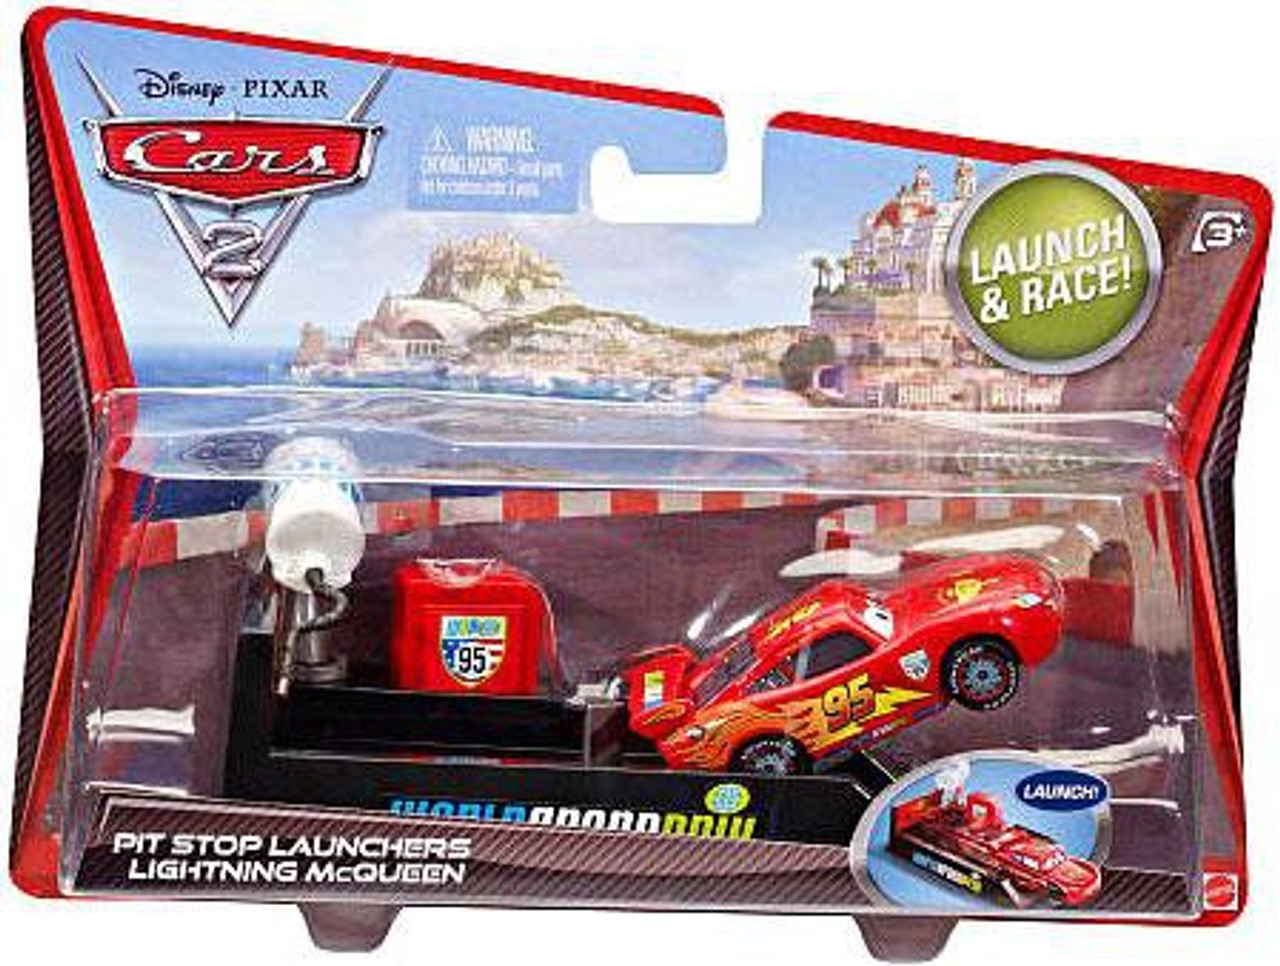 Disney Cars Cars 2 Pit Stop Launchers Lightning McQueen Diecast Car [With Launcher]